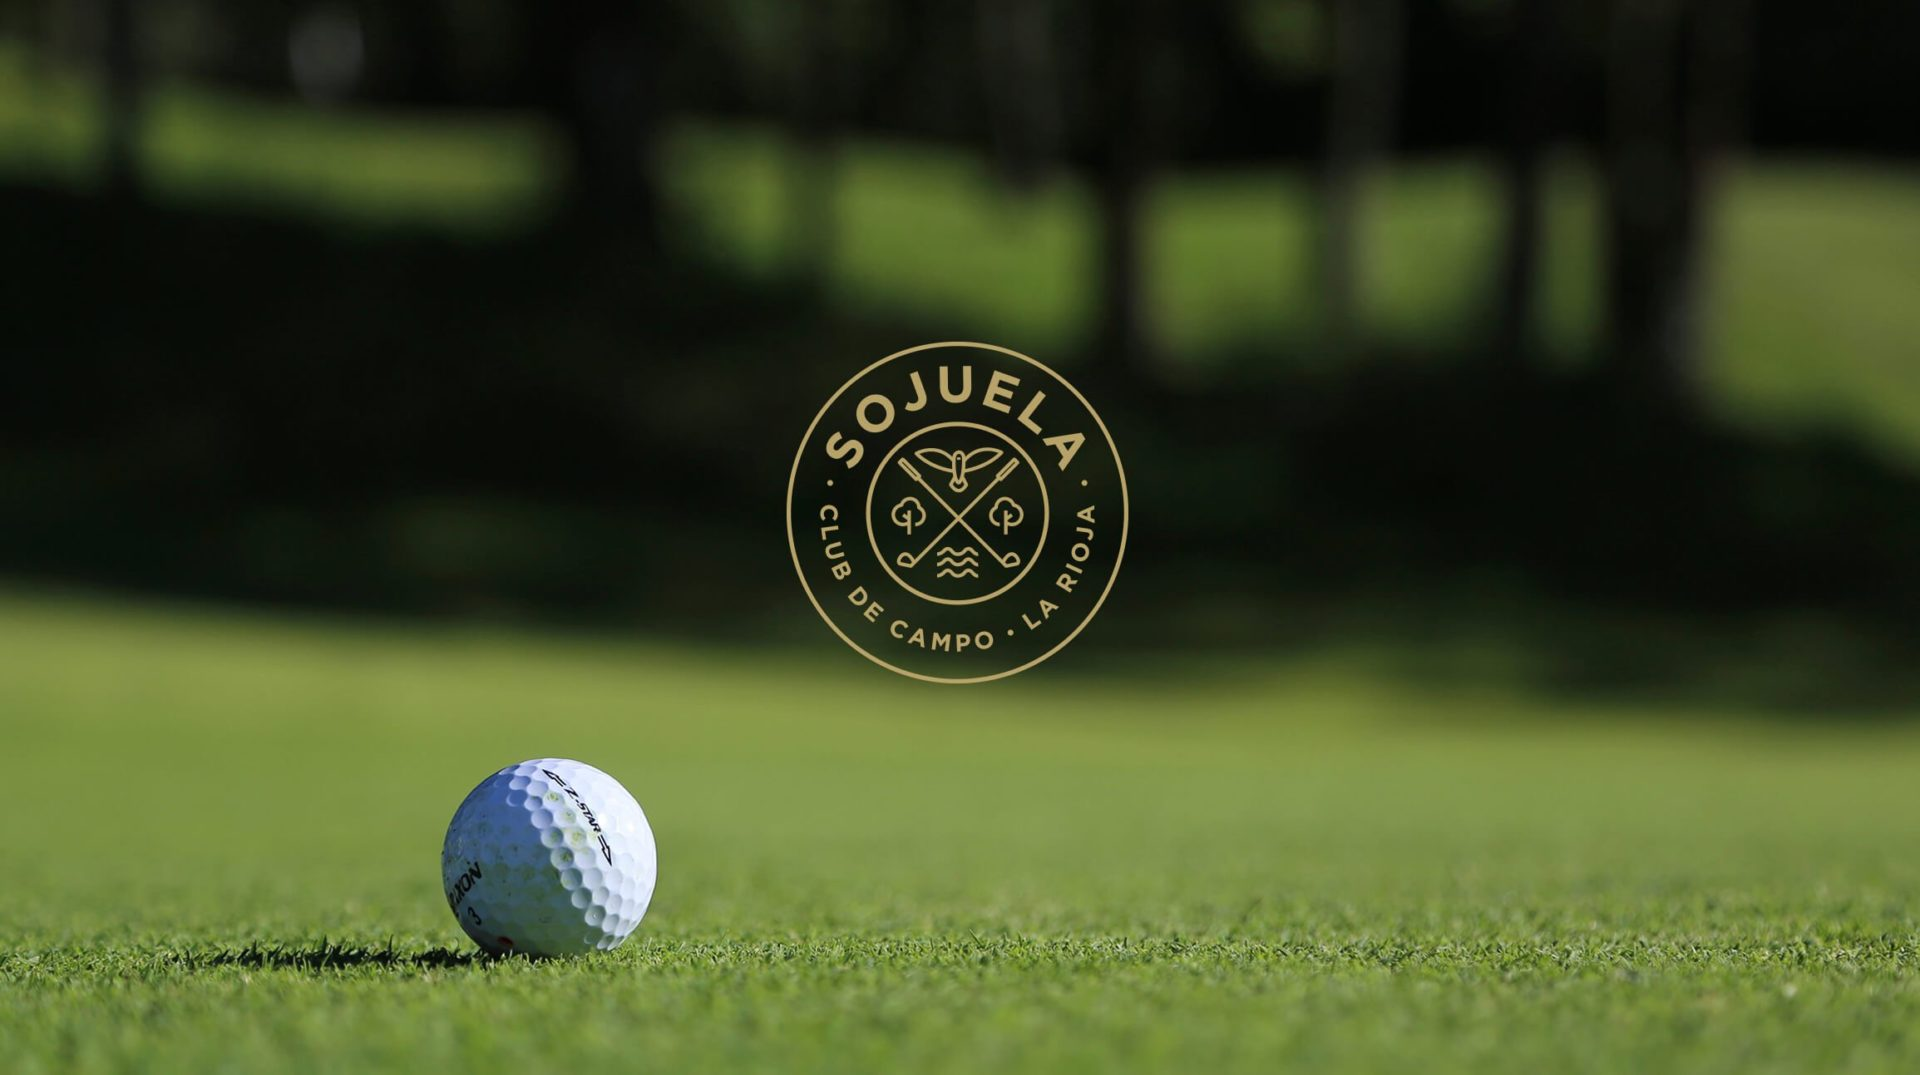 logotipo-pelota-campo-club-golf-sojuela